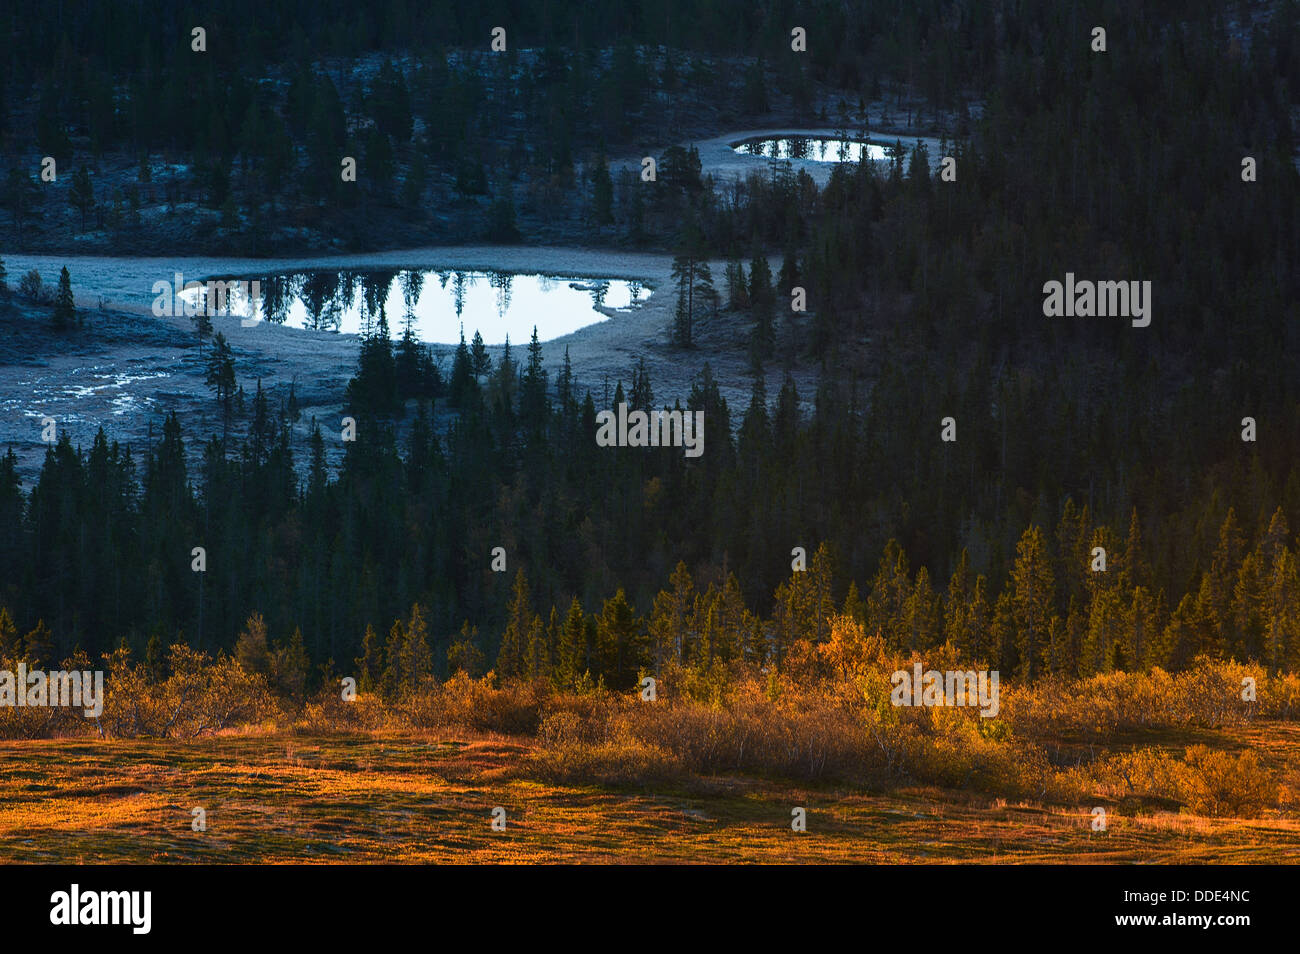 Forests and lake, Nipfjället, Dalarna, Sweden - Stock Image